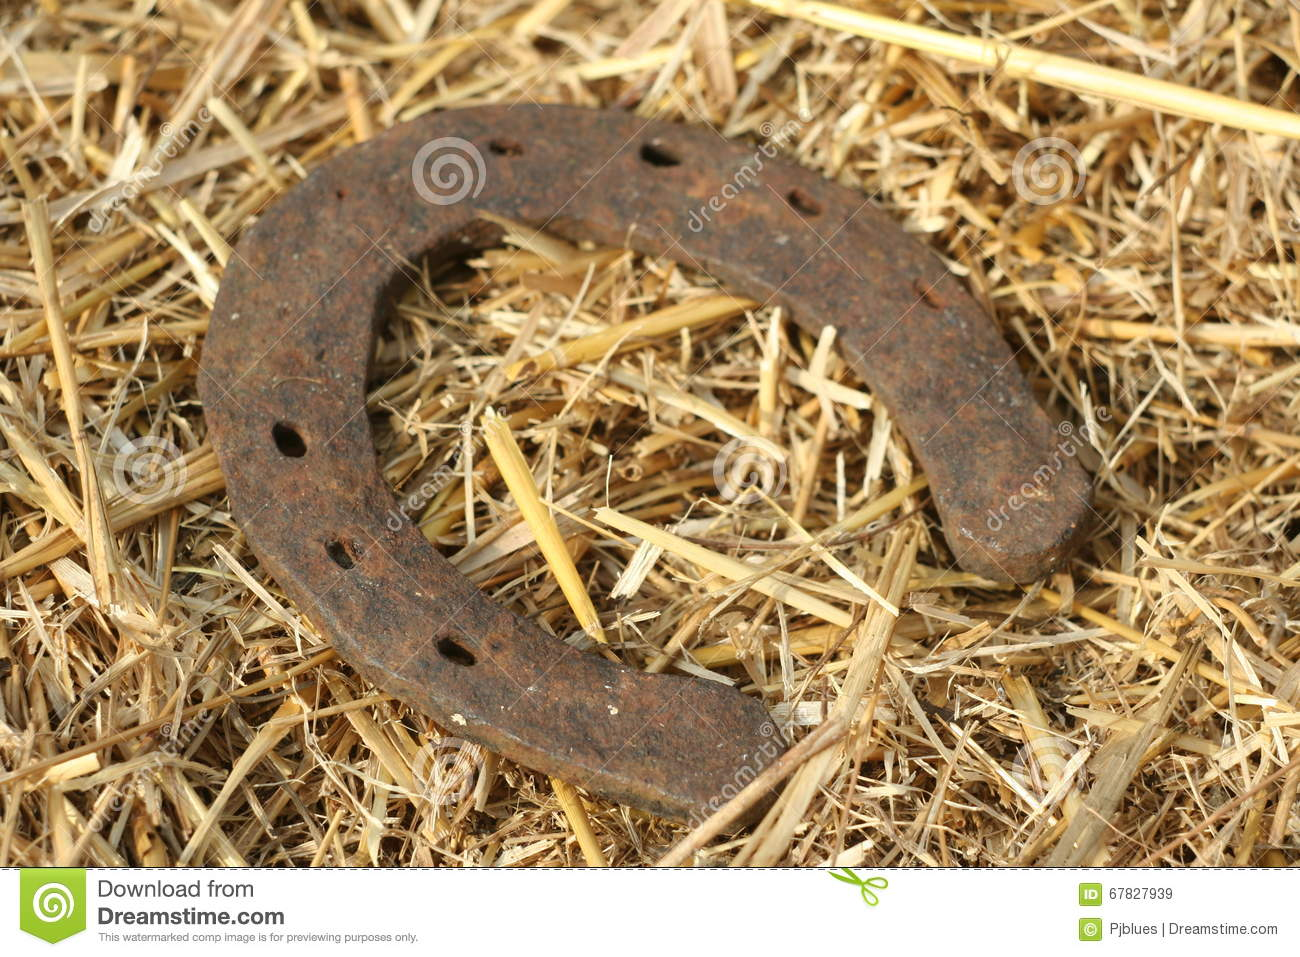 Rusty horseshoes on a straw background rustic scene in a country rusty horseshoes on a straw background rustic scene in a country style old iron horseshoe good luck symbol and mascot of well shoe motif biocorpaavc Choice Image